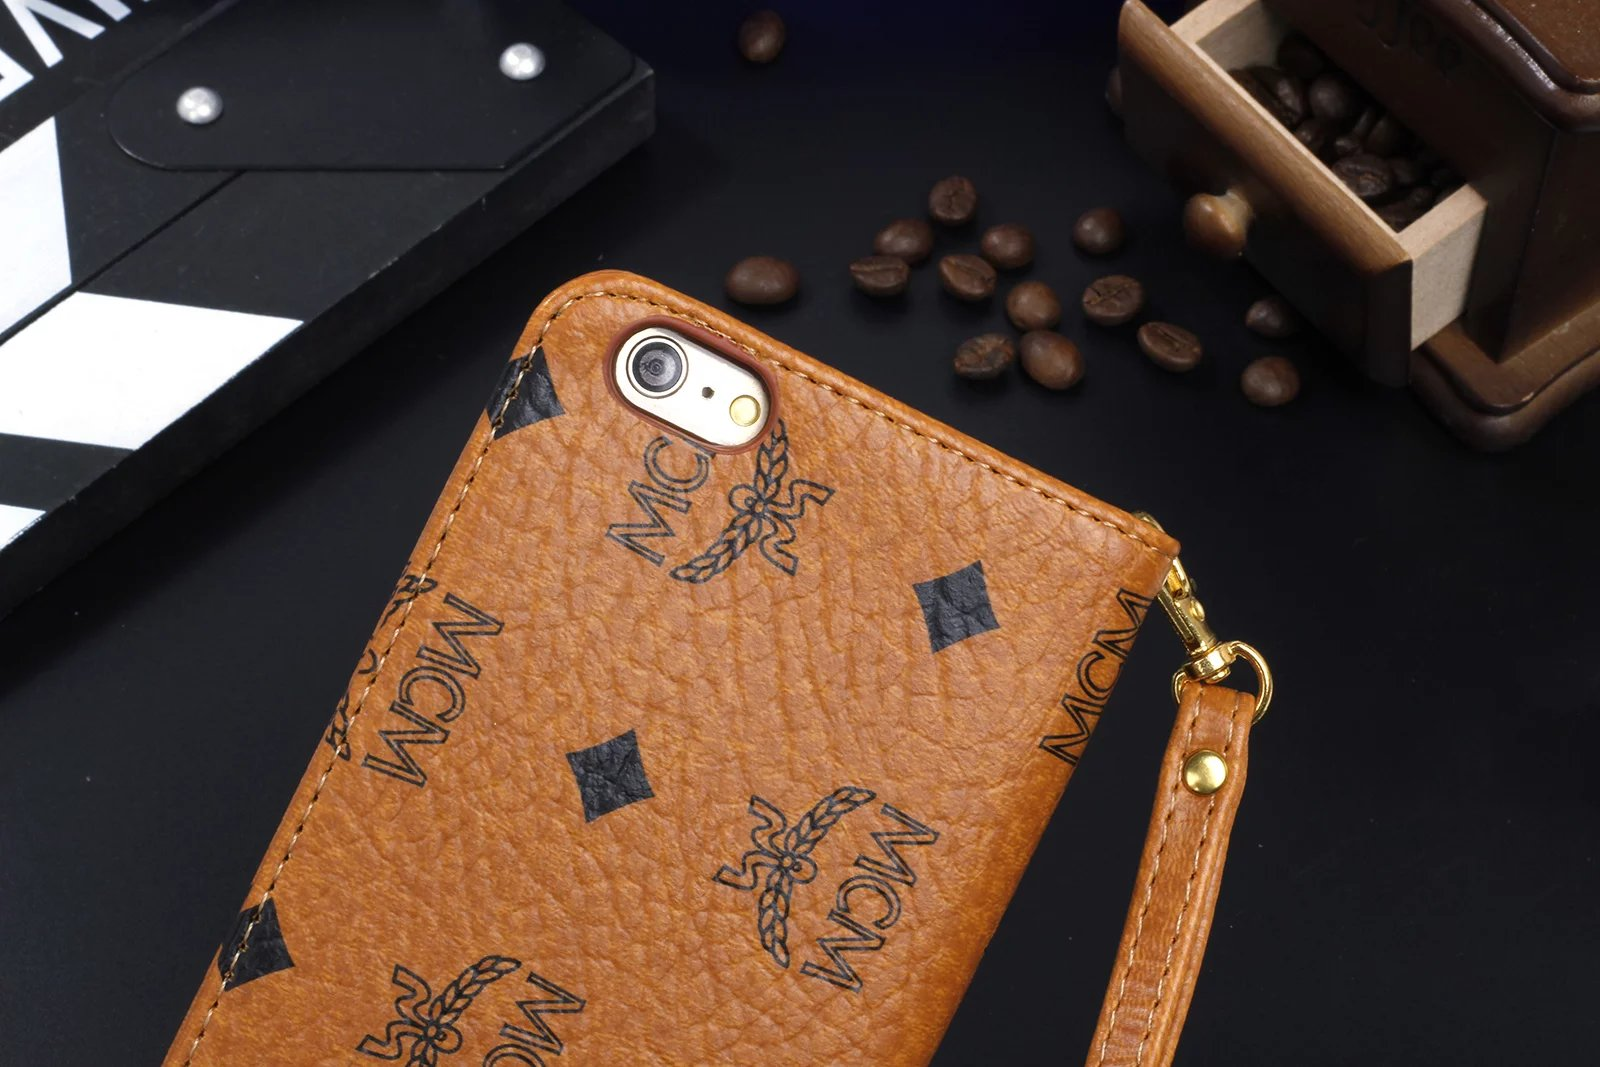 designer phone cases iphone 7 iphone 7 cases online fashion iphone7 case new iphone 7 cases make a custom iphone case personalized cell phone covers personalised phone case iphone 7 latest iphone 7 cases phone cases and accessories